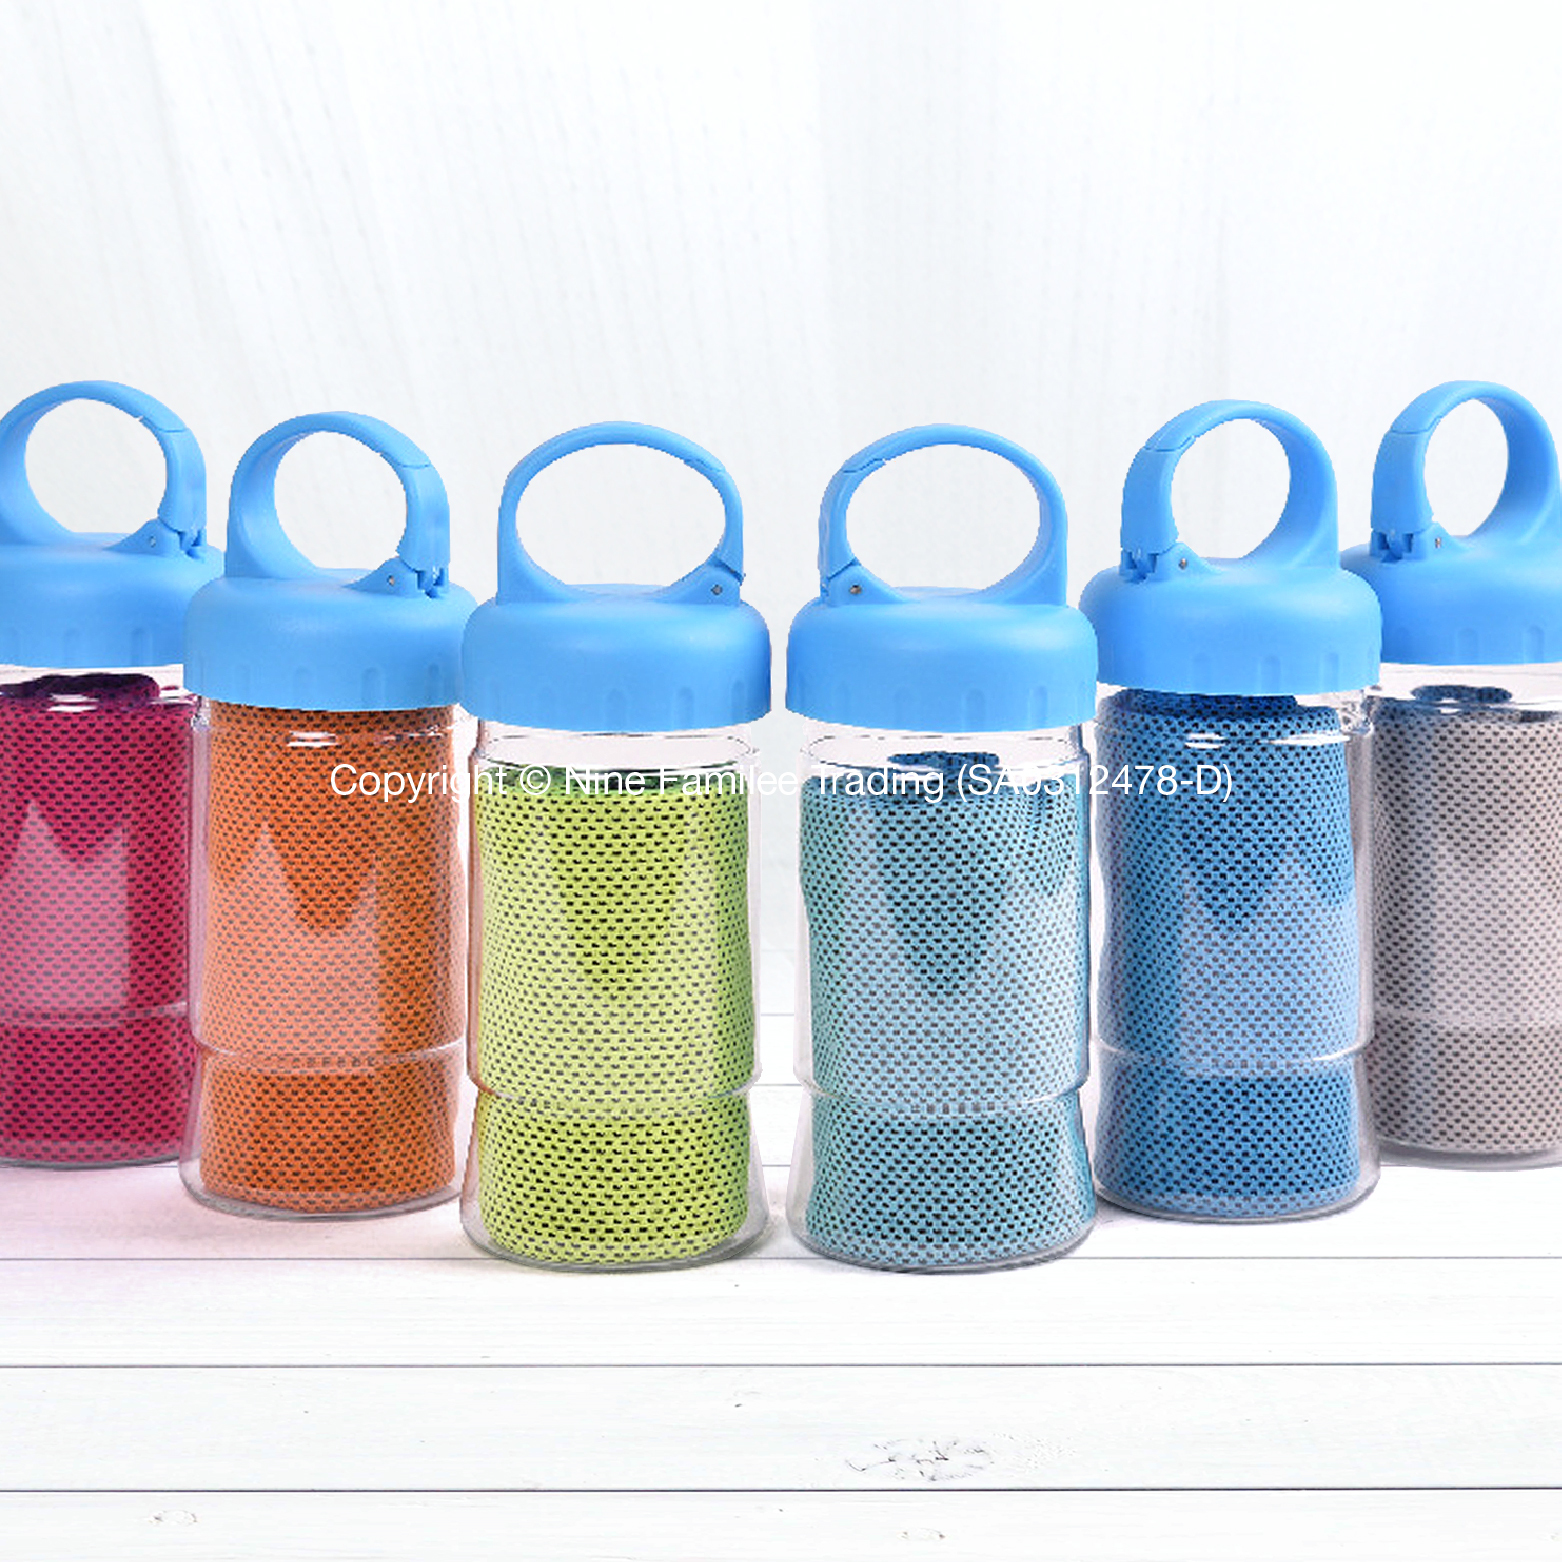 Products - Cooling Towel Bottle-01.jpg